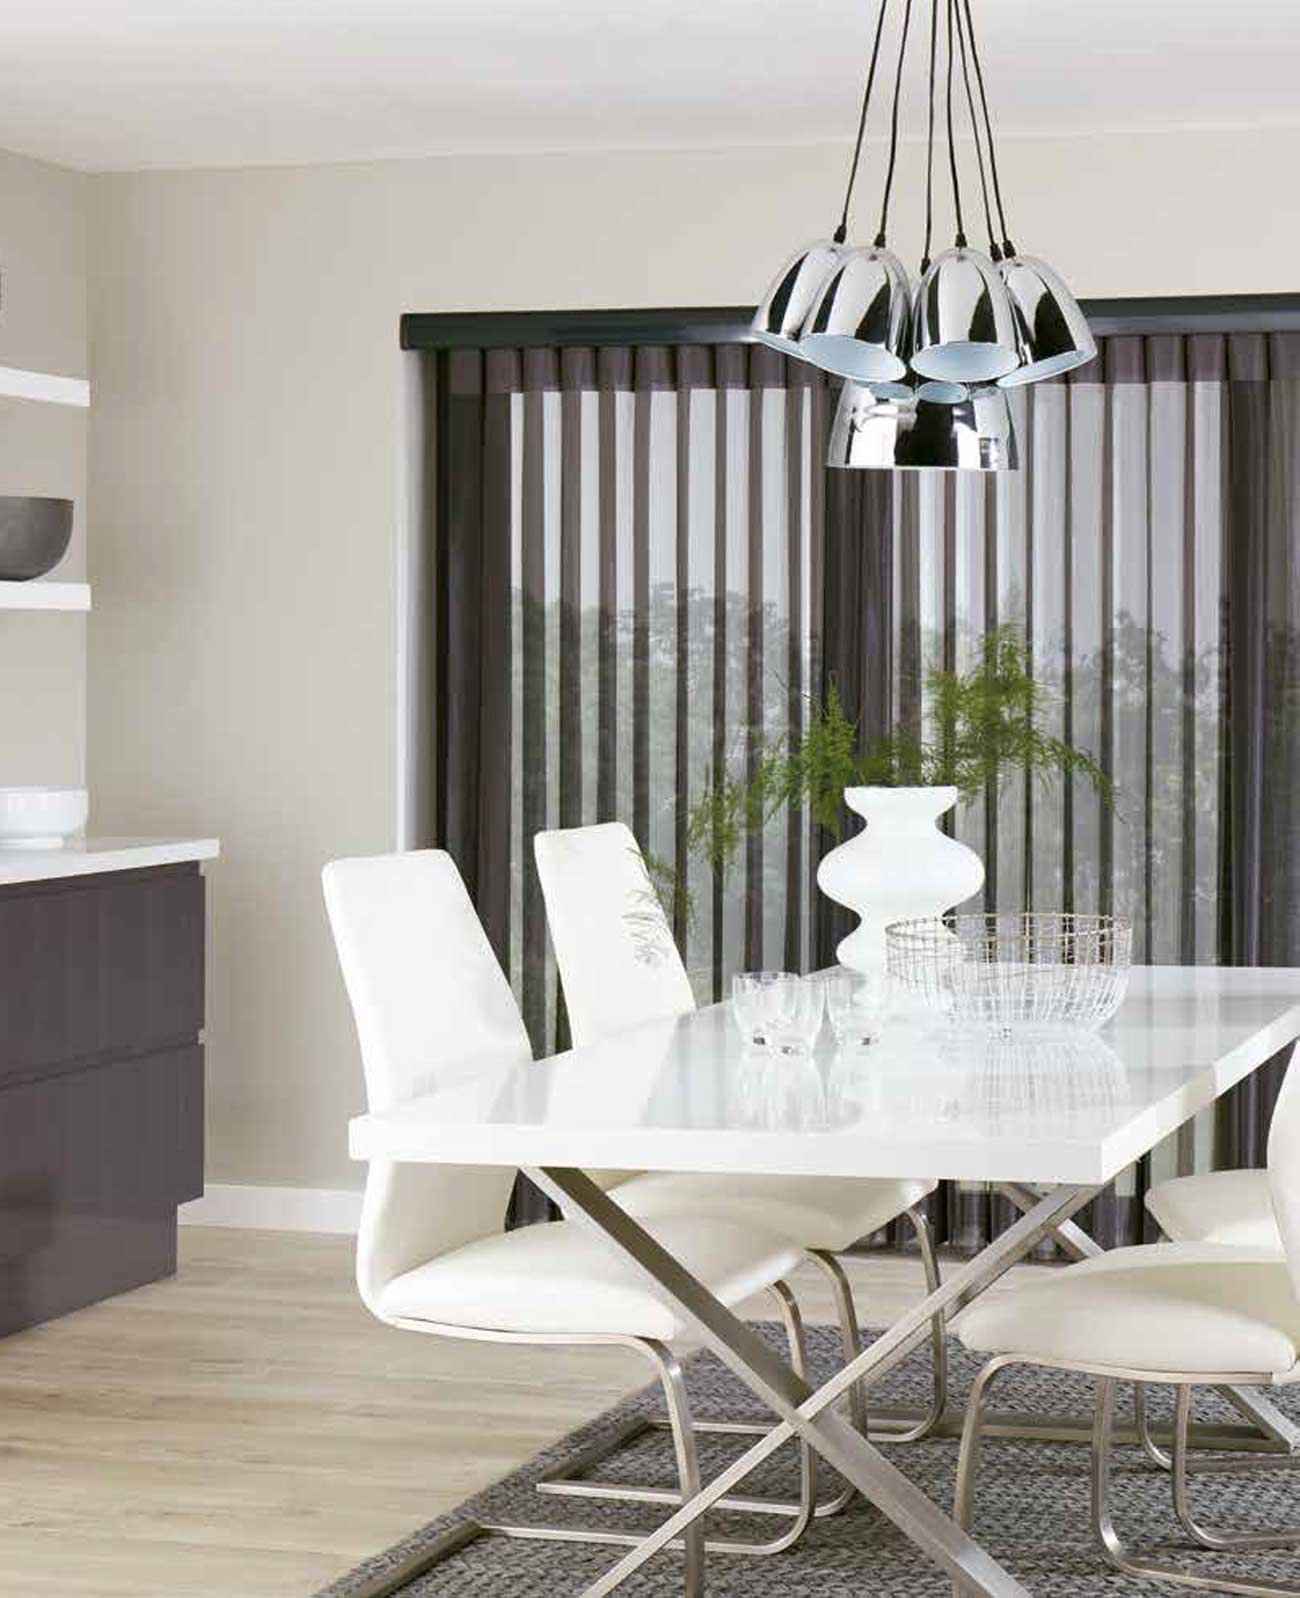 Stylish Allusion Blinds Supplier in Lurgan, Northern Ireland - Apex Blinds